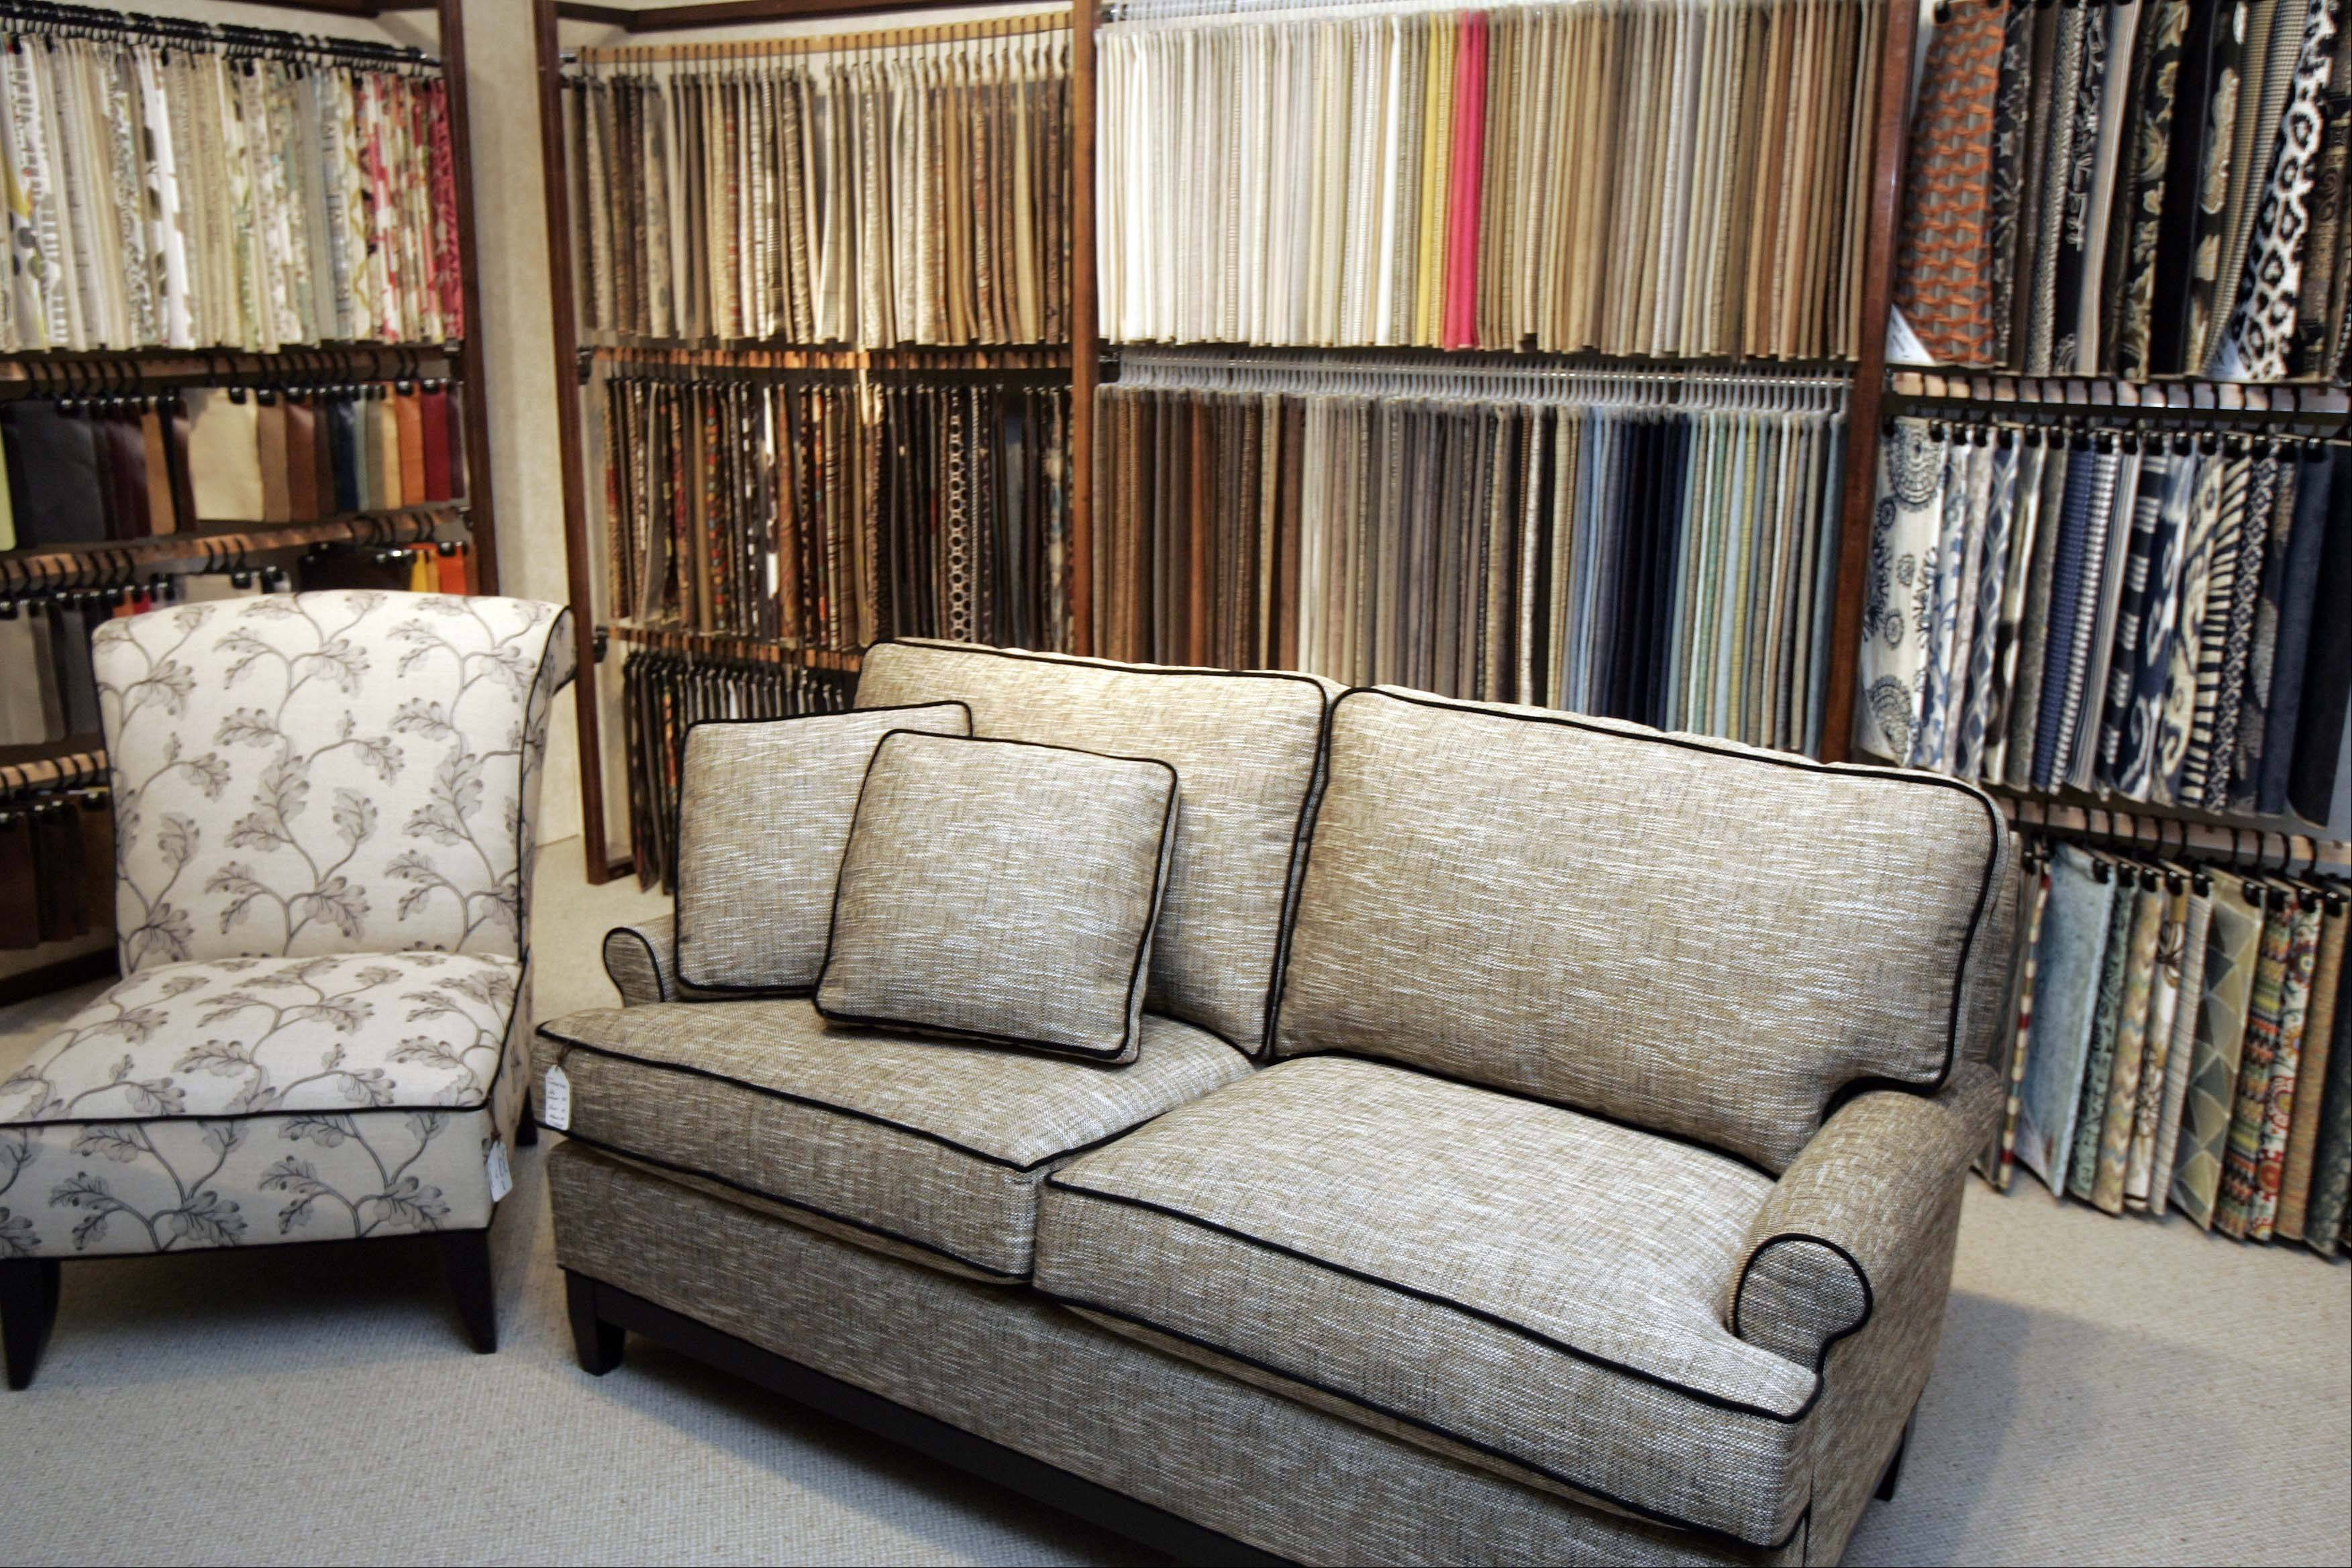 Dow Furniture In North Aurora Offers Some Smaller And Compact Furniture For  Those Homeowners Looking To